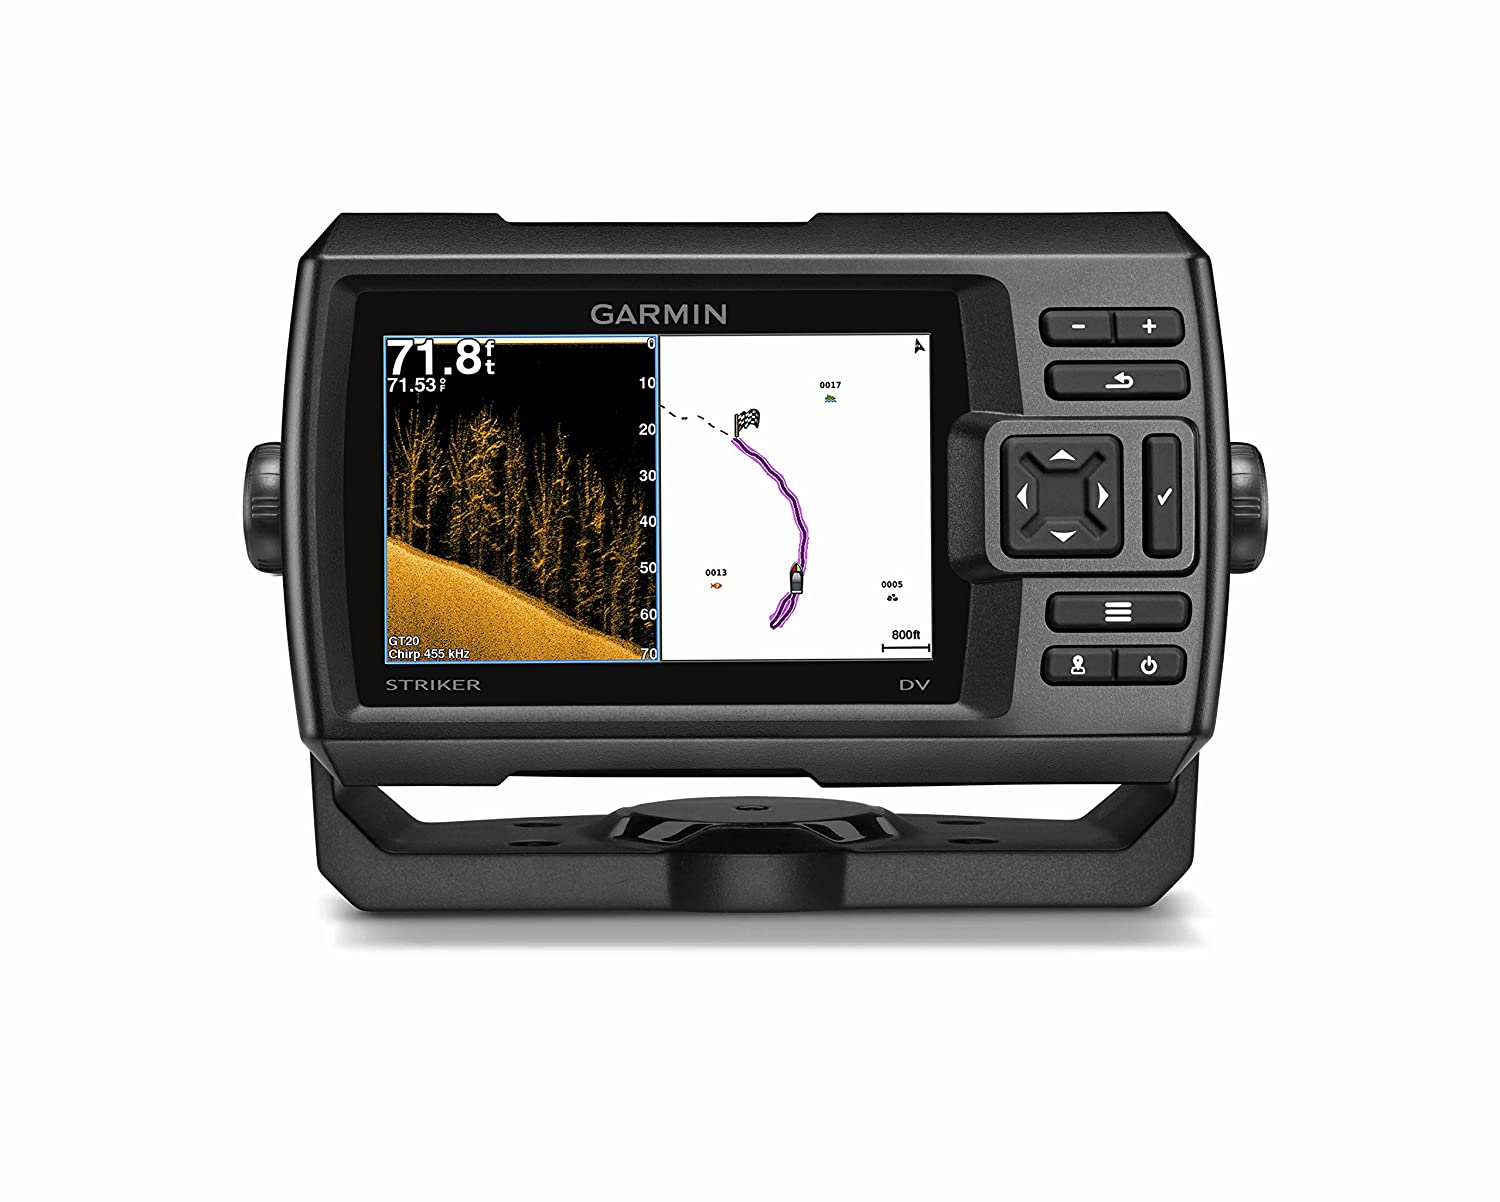 Garmin Striker 5DV/GPS Fish finder with GPS